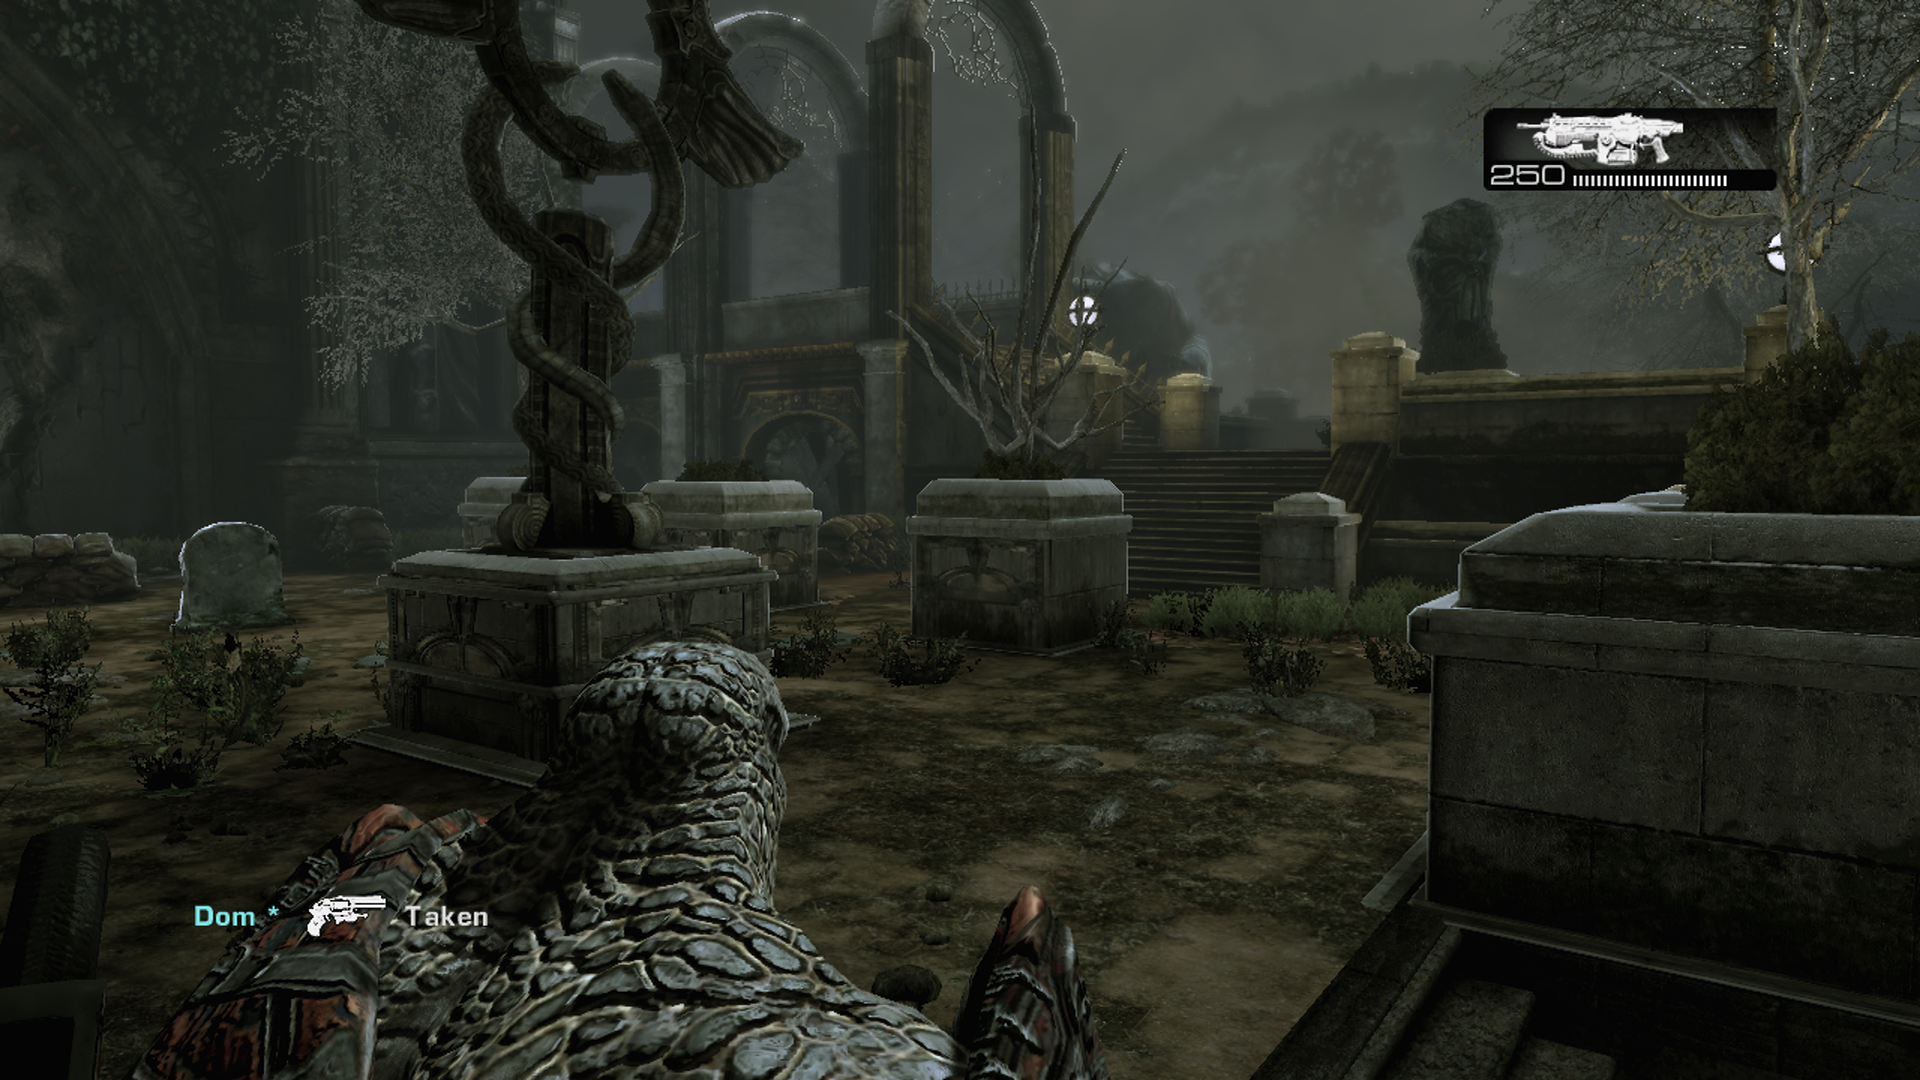 Gears of War 2: Dark Corners Multiplayer Map Pack ... on halo 3: odst, tekken 2 maps, left 4 dead, left 4 dead 2, call of duty waw maps, unreal 2 maps, company of heroes 2 maps, guild wars 2 maps, dead space, god of war, call of duty: advanced warfare maps, halo: combat evolved, unreal engine, mortal kombat 2 maps, red dead redemption, the elder scrolls v: skyrim, gears of war 1 maps, call of duty: modern warfare 3, metal gear 2 maps, advance wars 2 maps, dark souls 2 maps, dying light 2 maps, goat simulator maps, dante's inferno maps, the crew maps, gears of war 4 maps, call of duty: world at war, marcus fenix, halo: reach, epic games, call of duty mw2 maps, call of duty: modern warfare 2, gears of war 3, call of duty 2 maps, the last of us maps, mass effect 2, star wars battlefront 2 maps,